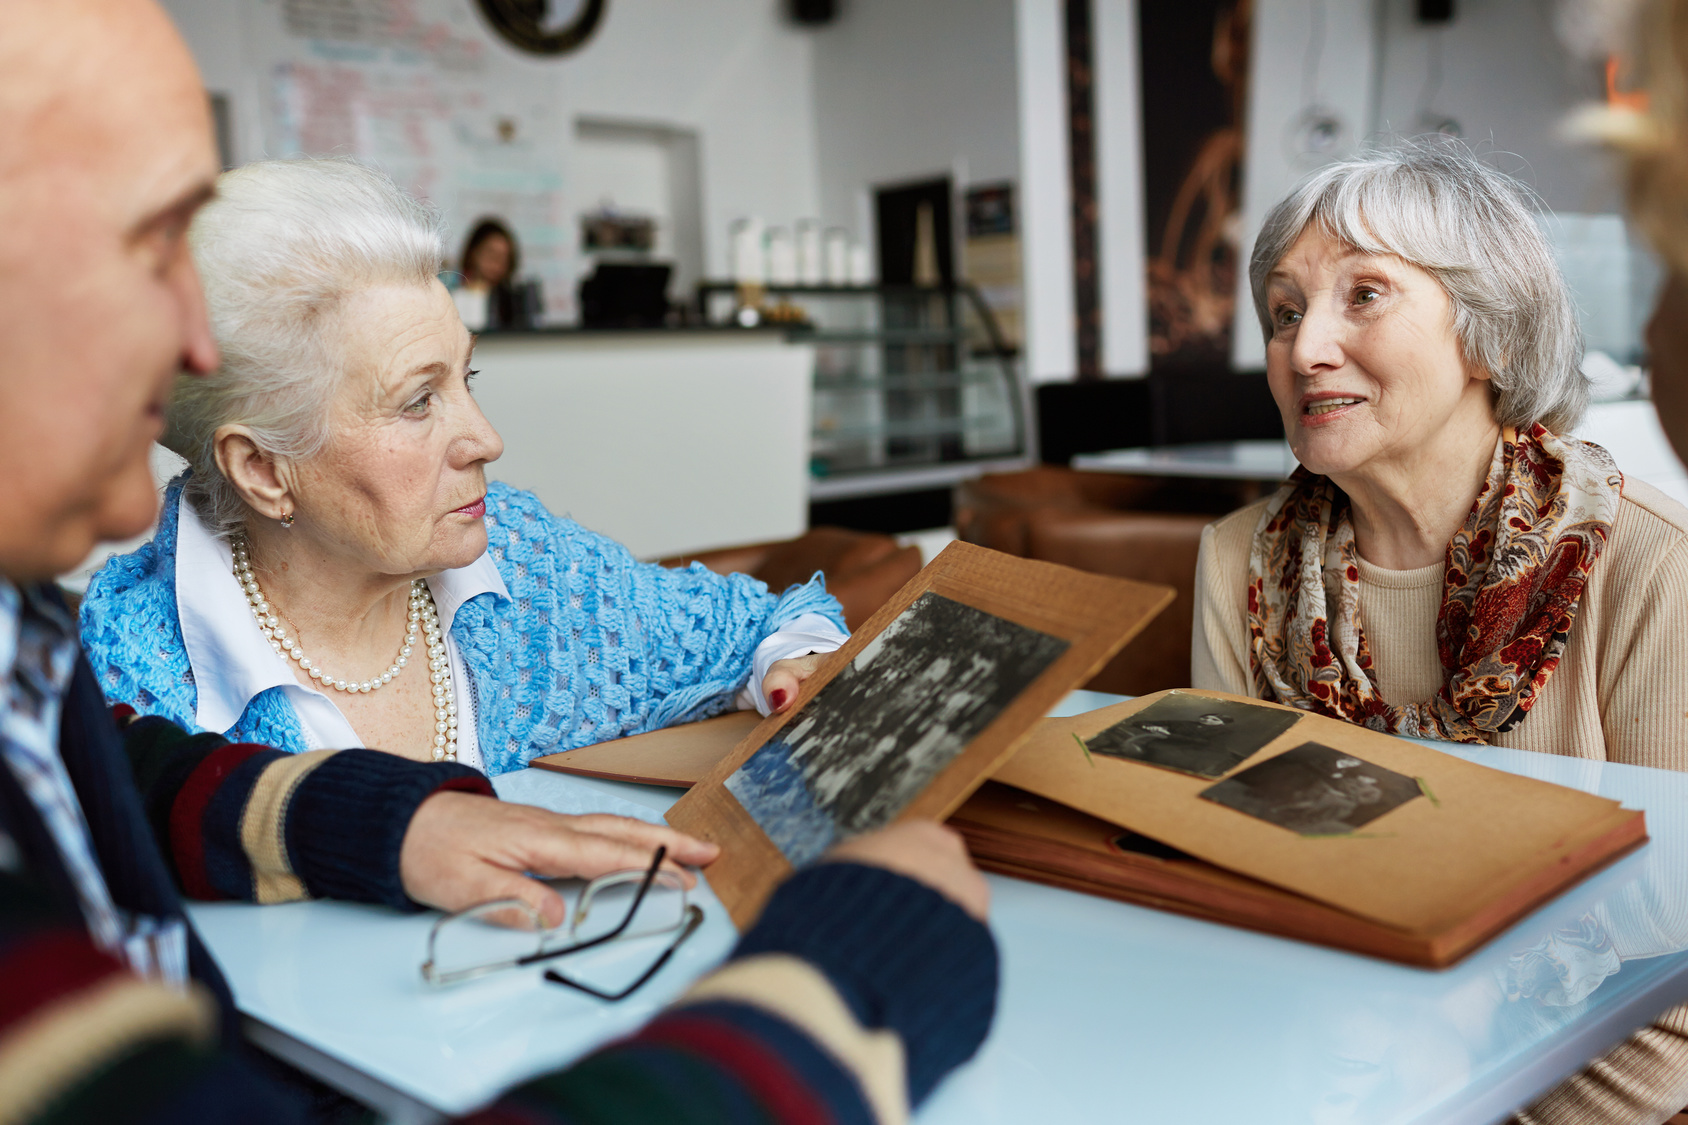 Friendly seniors talking while looking through photographs